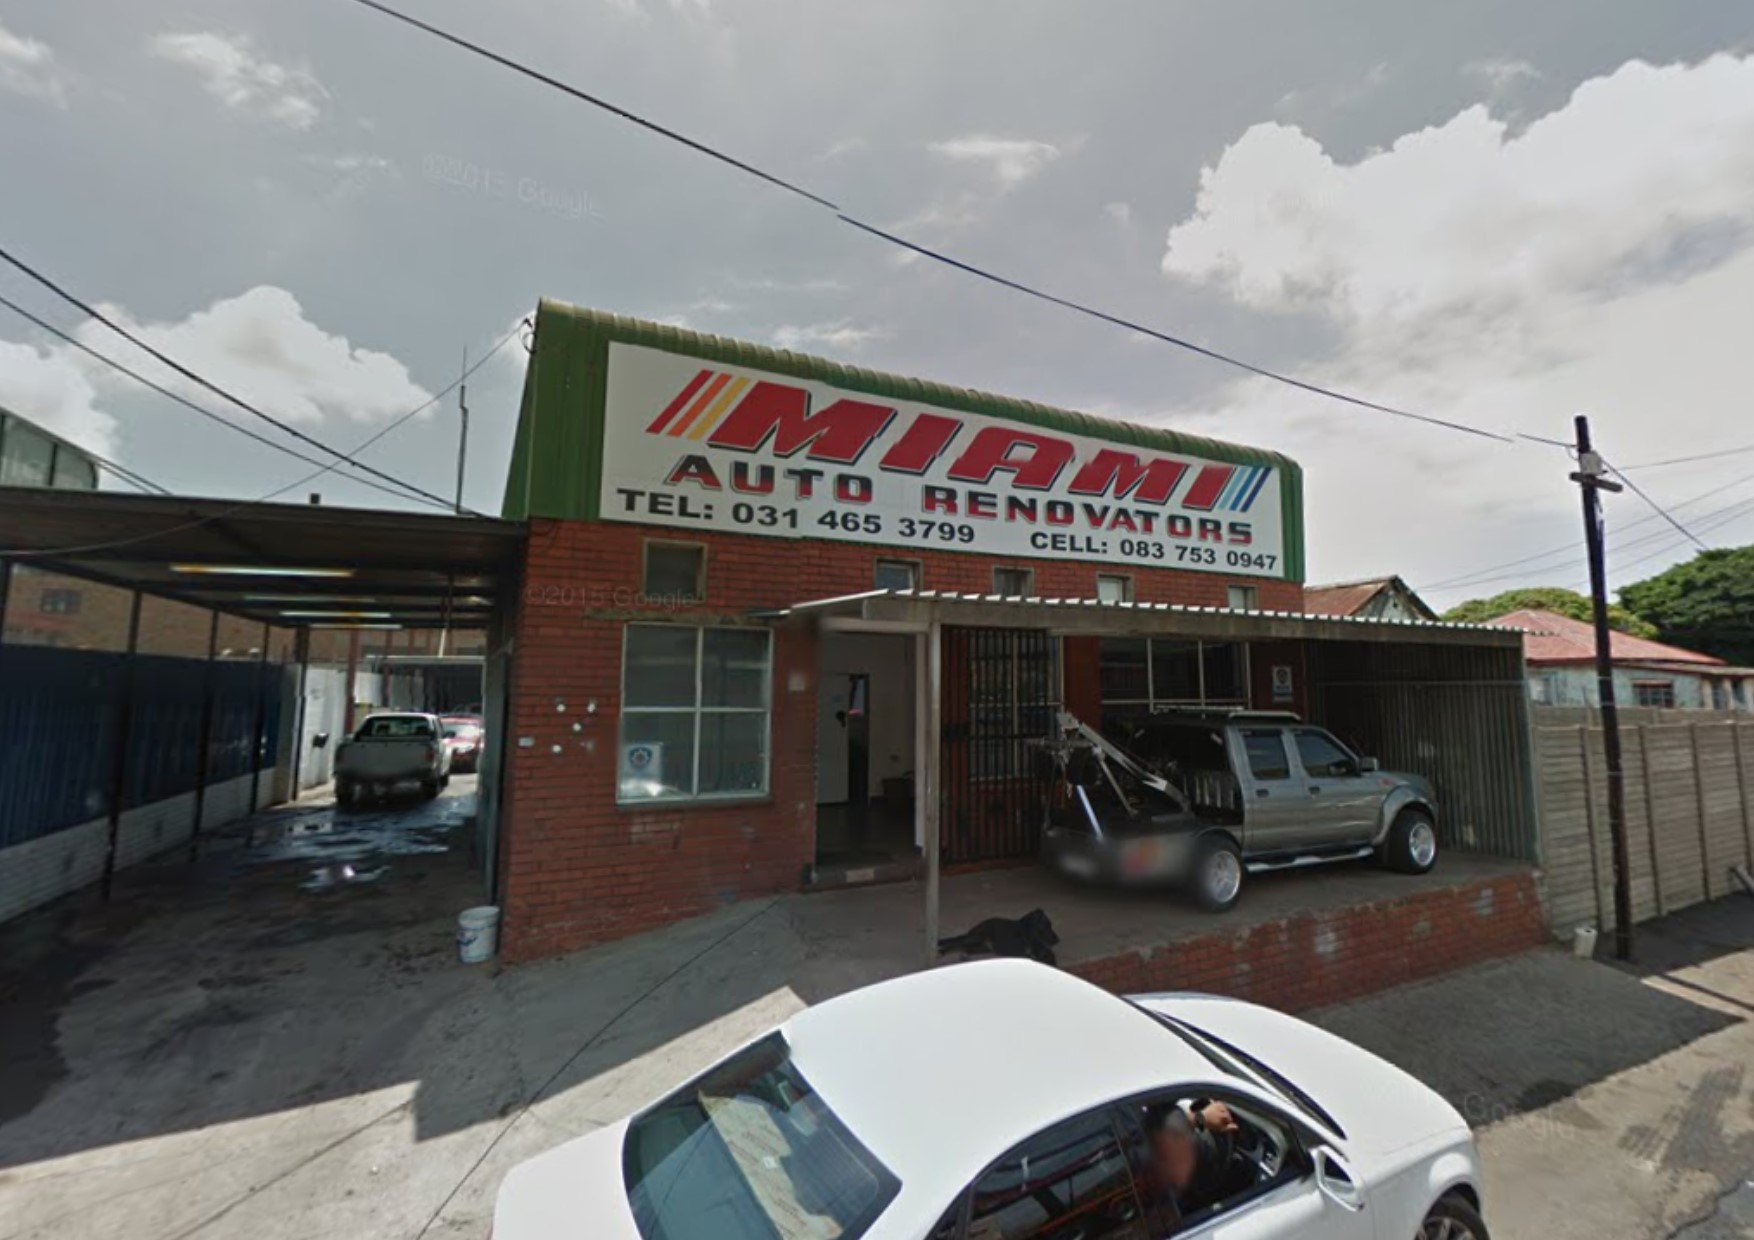 Miami Auto Renovators - Durban South